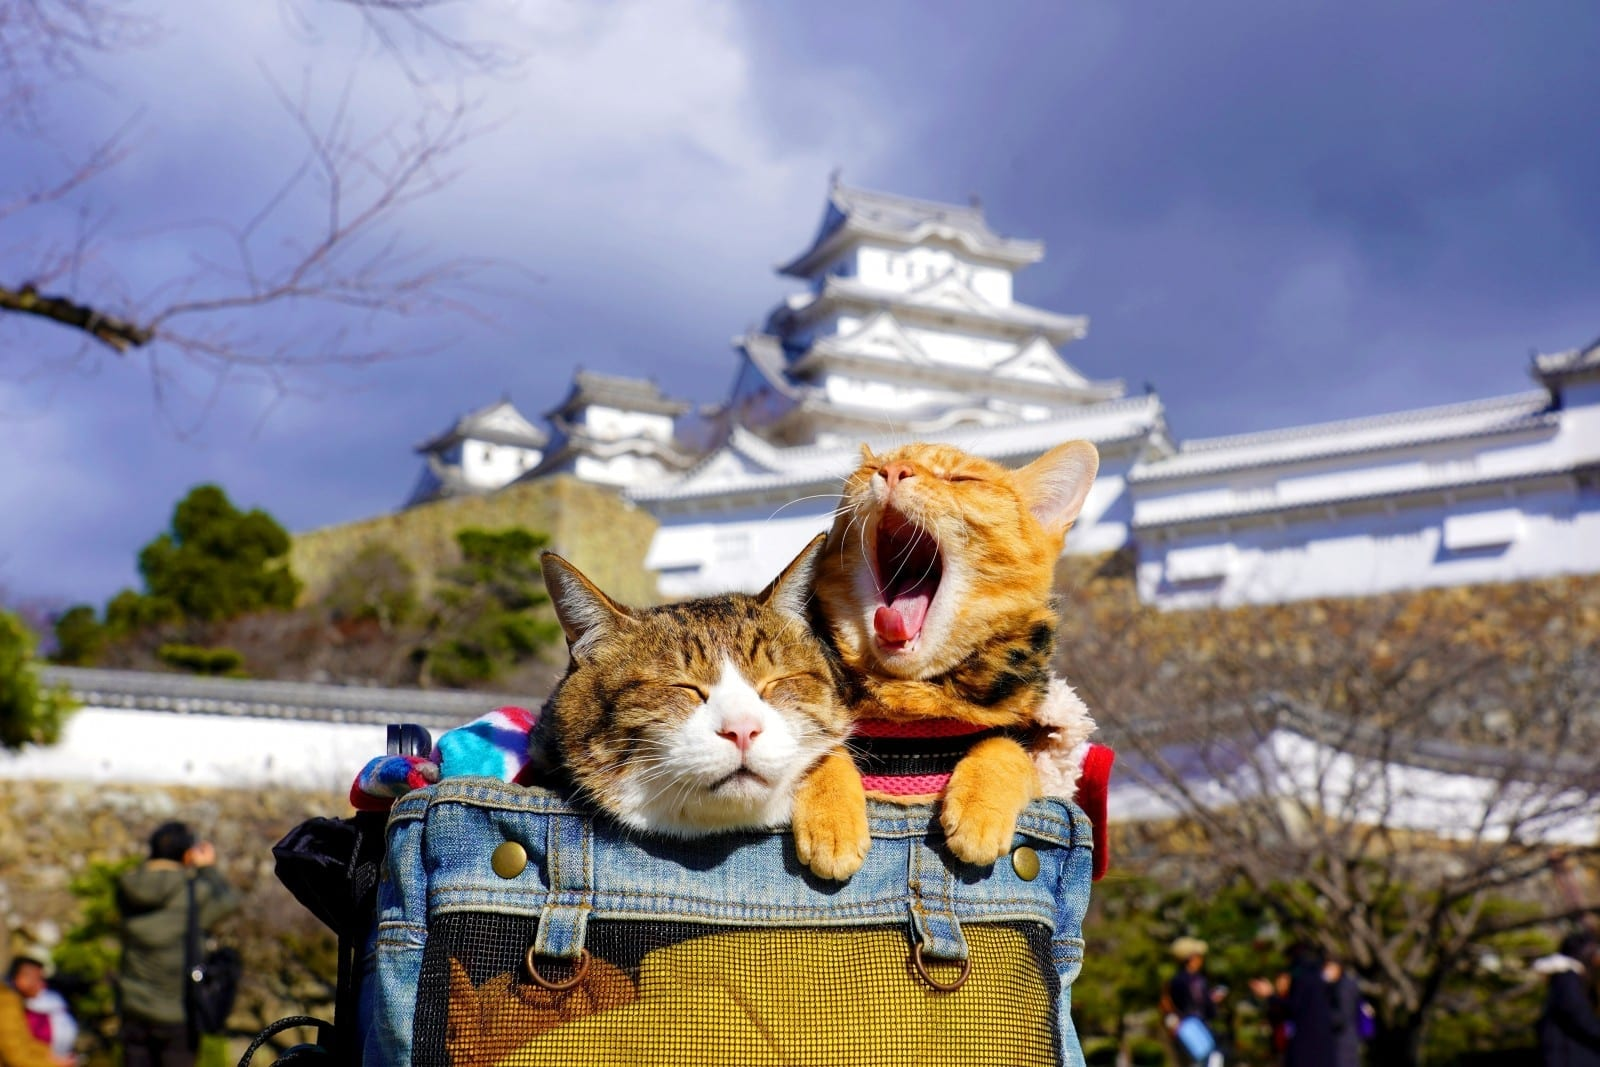 Meet The Real Hello Kittys! - Rescue Kittens That Travel Japan With Their Owner